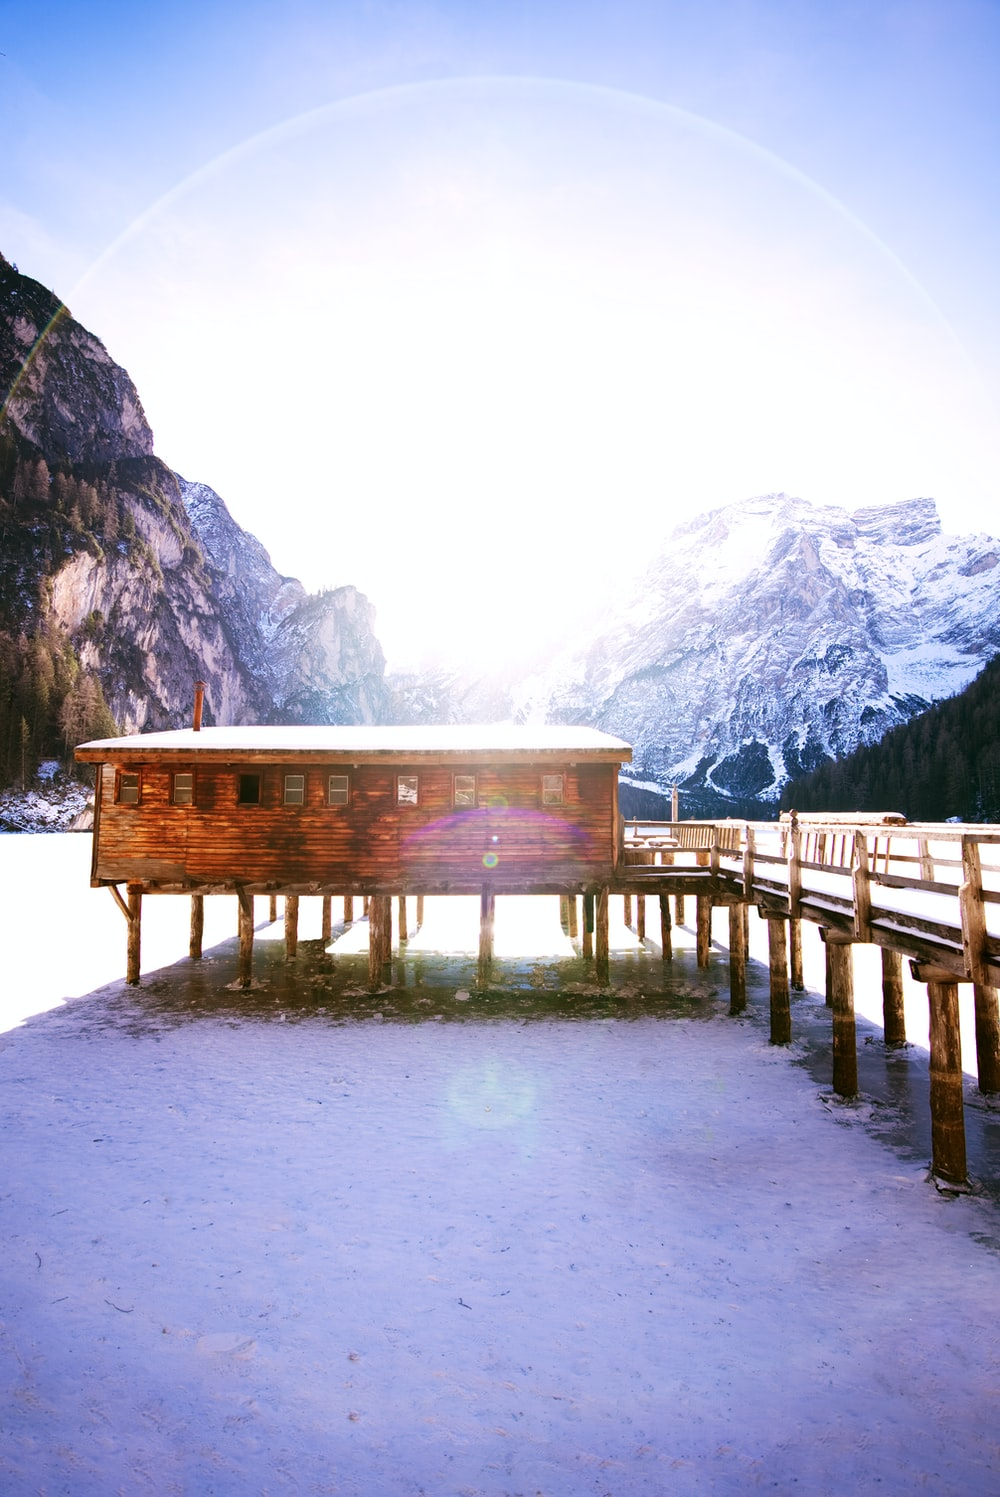 shallow focus photo of cabin near snow covered mountain